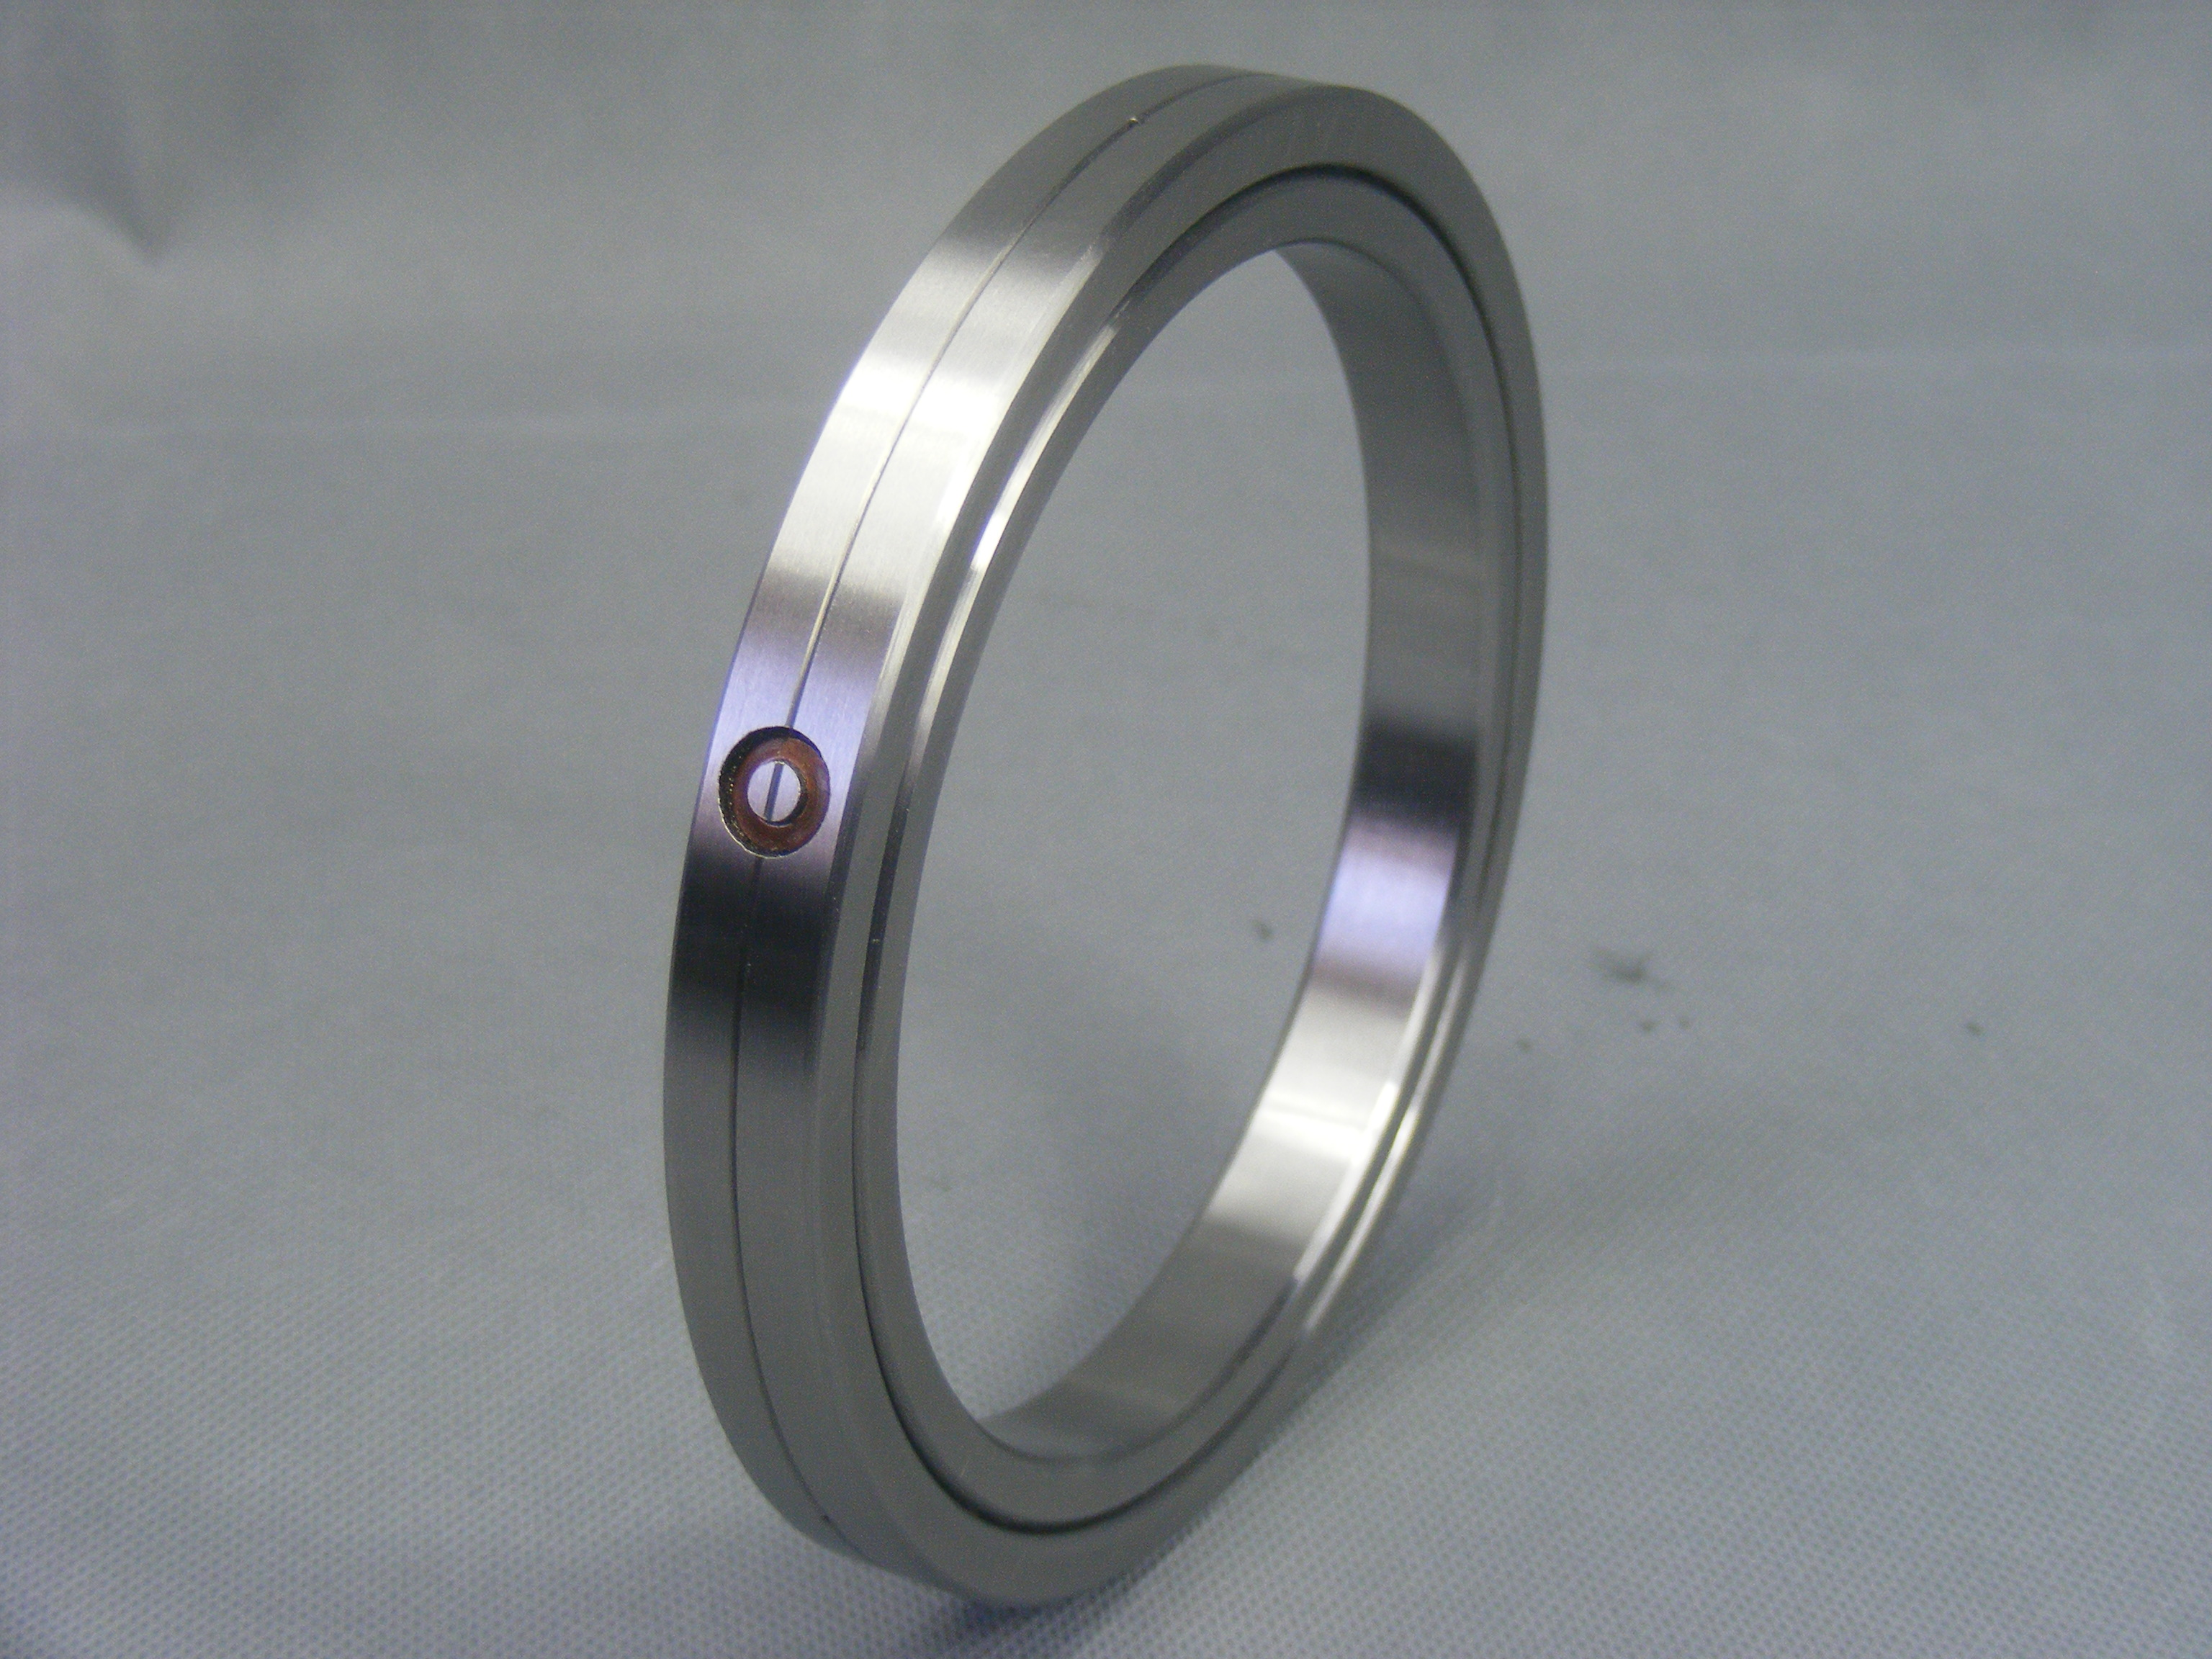 SX011836 Cross Roller Bearing XRC18022